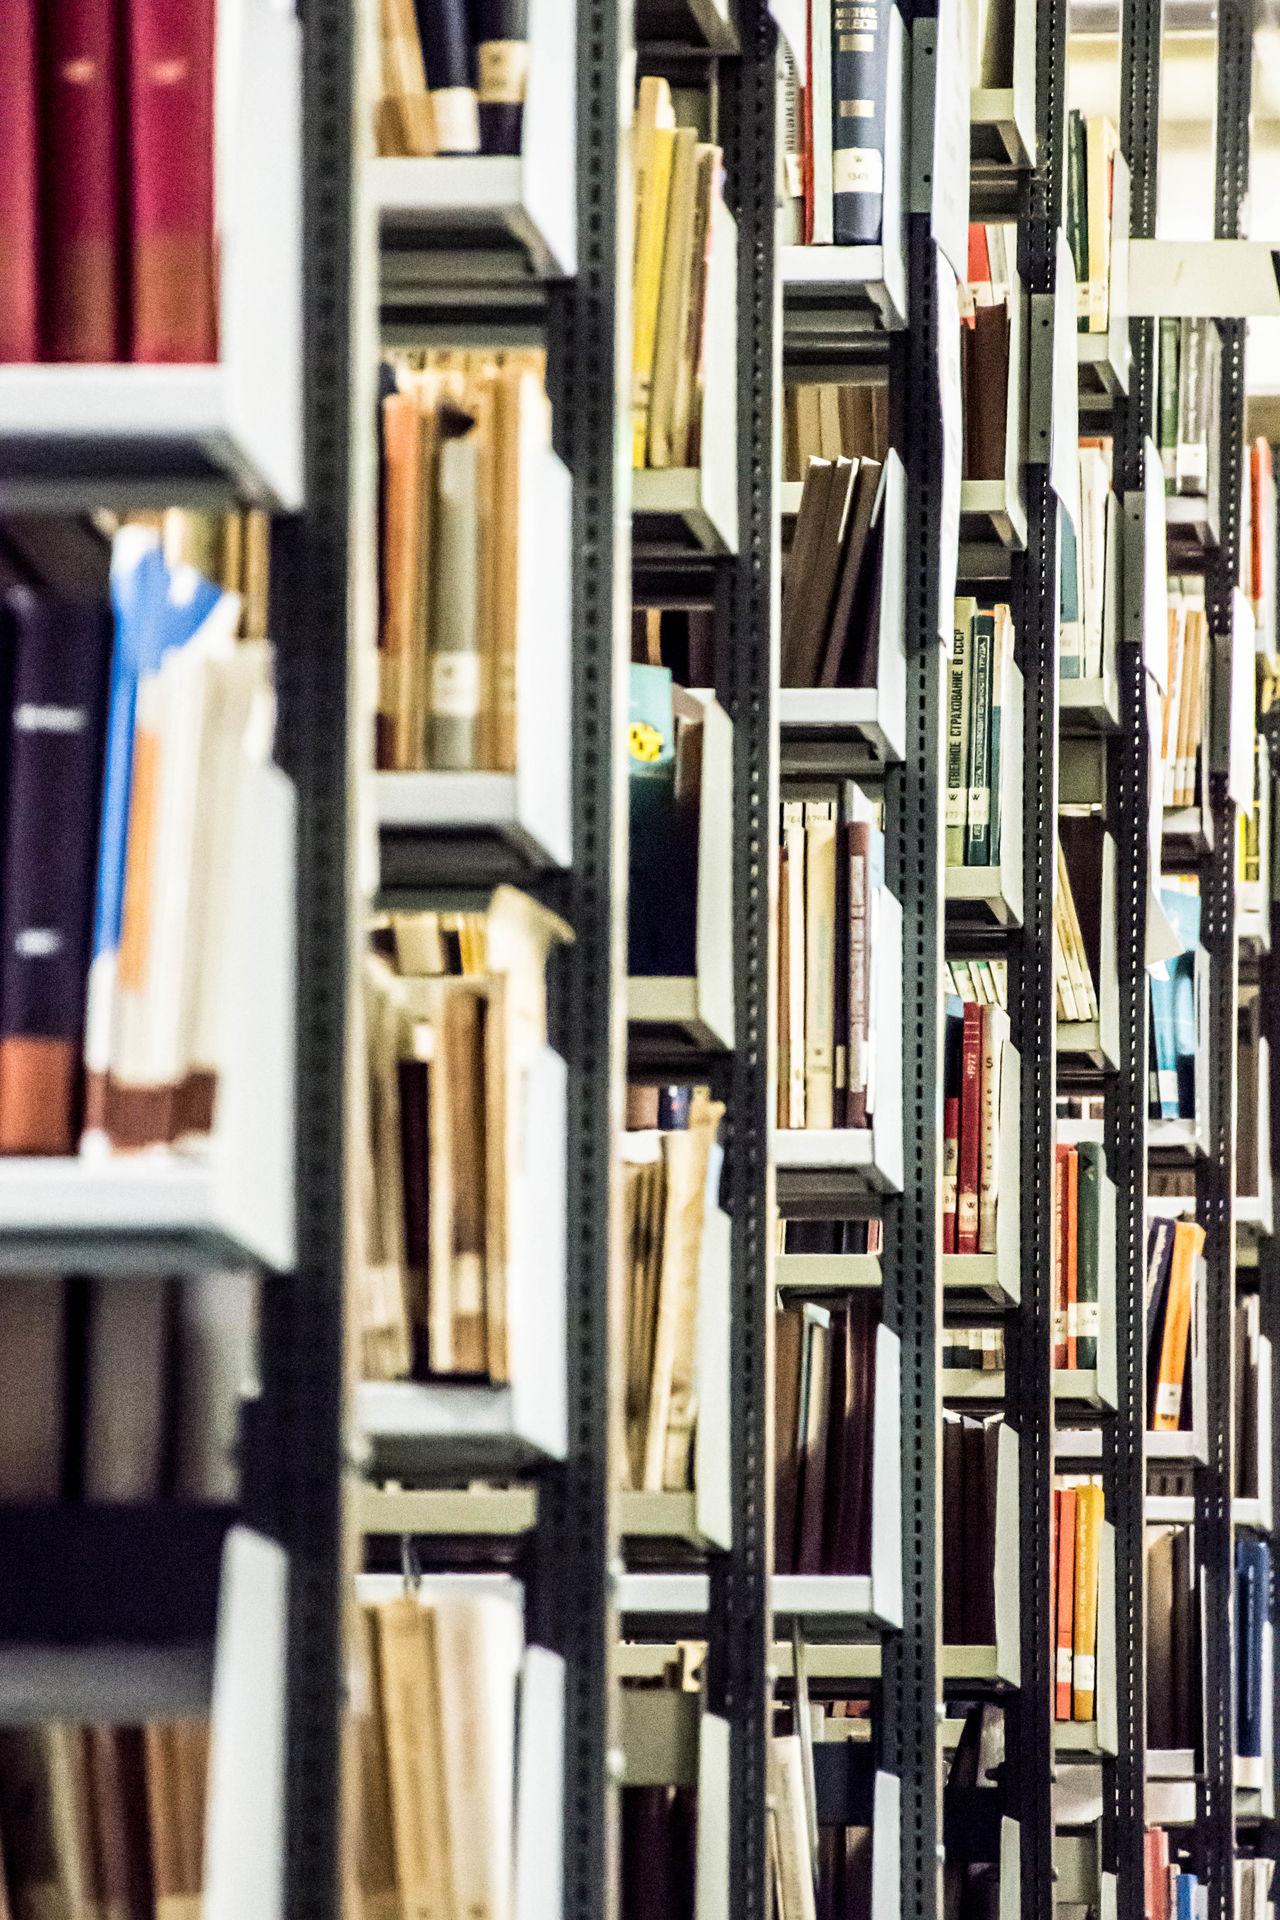 Books Full Frame Backgrounds No People Close-up Open Stack Berlin Freie Universität Studying Student Studieren Learn Study Archives Architecture Book Research University Shelf Education Bookshelf Indoors  Library Bookstore Bookshelves Book Shelves